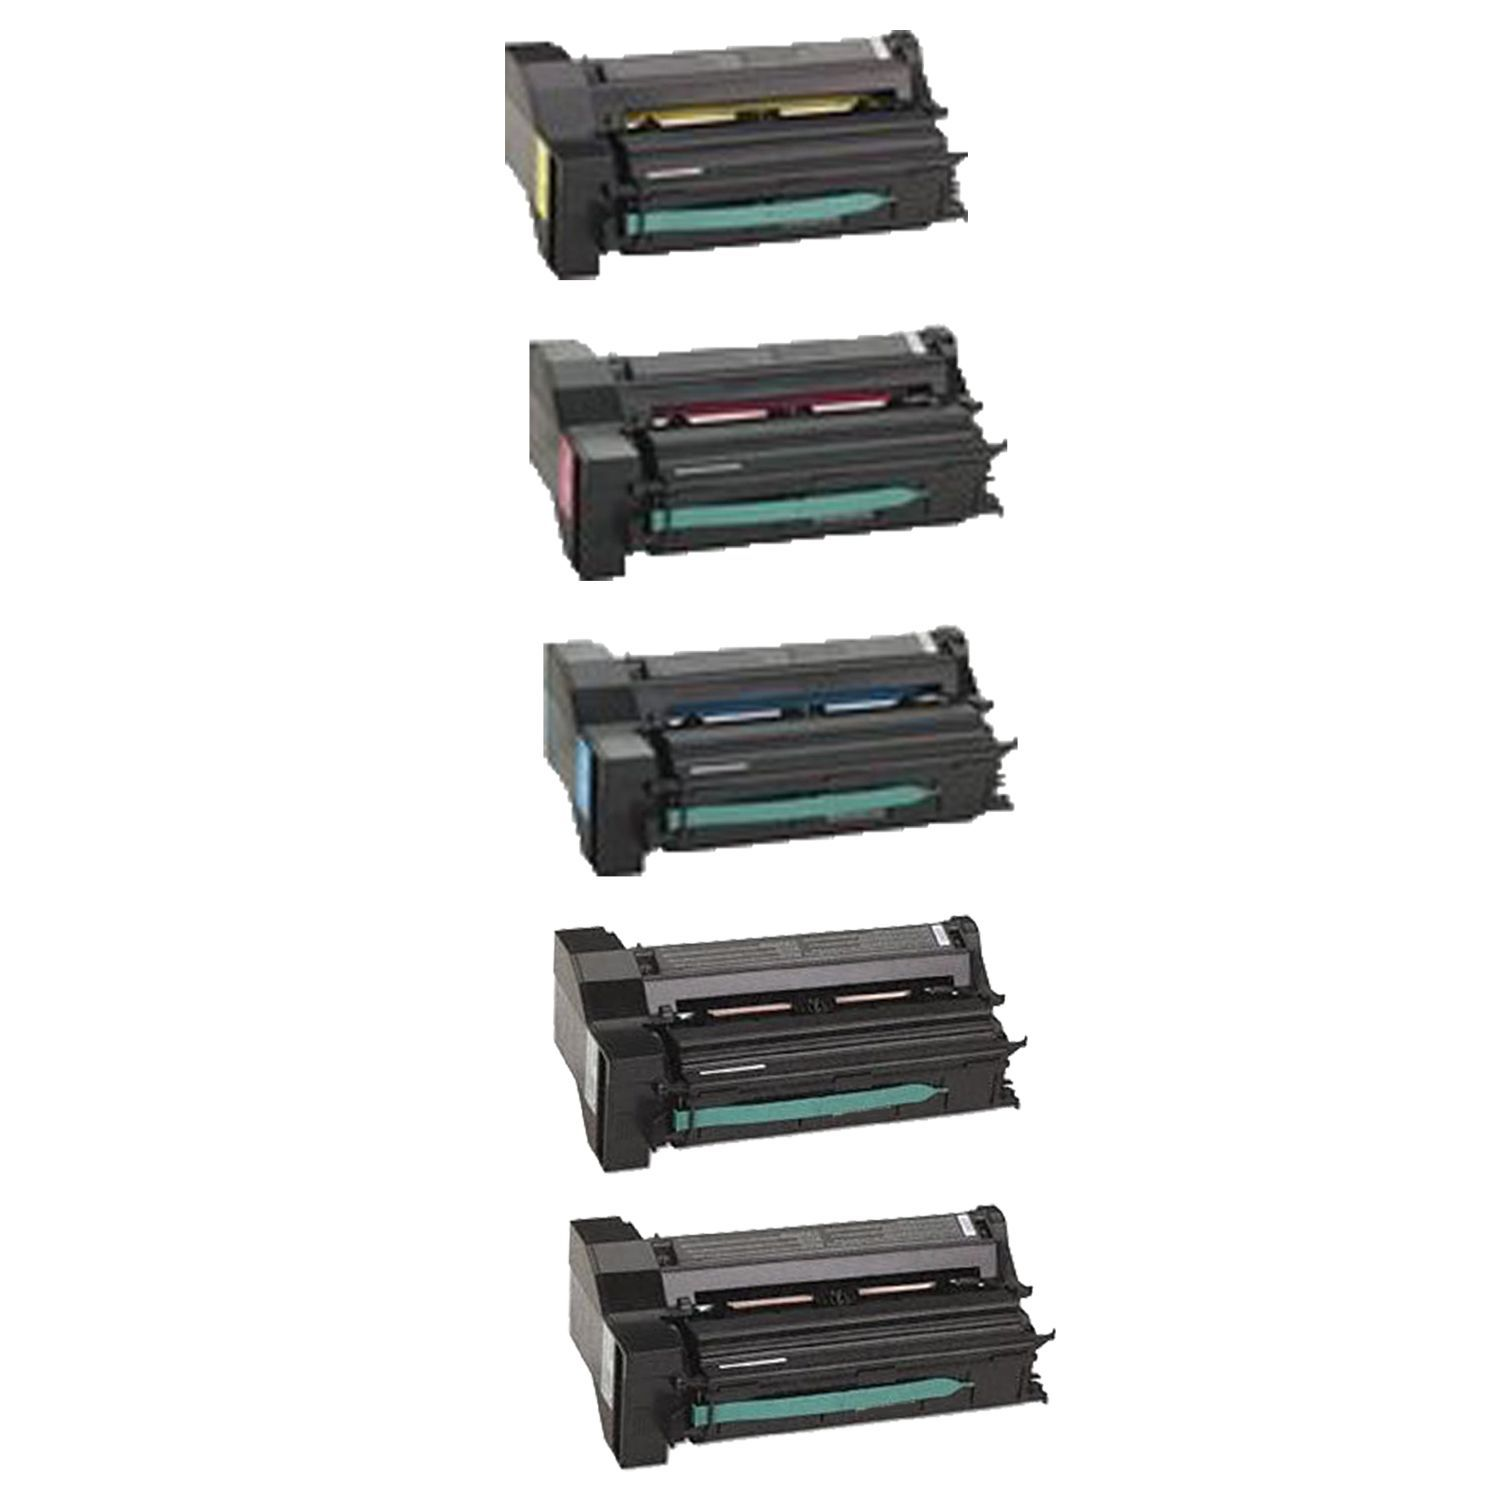 N 1Set + 1BK 39V0923 39V0924 39V0925 39V0926 Compatible Toner Cartridge for IBM InfoPrint Color 1654 1664